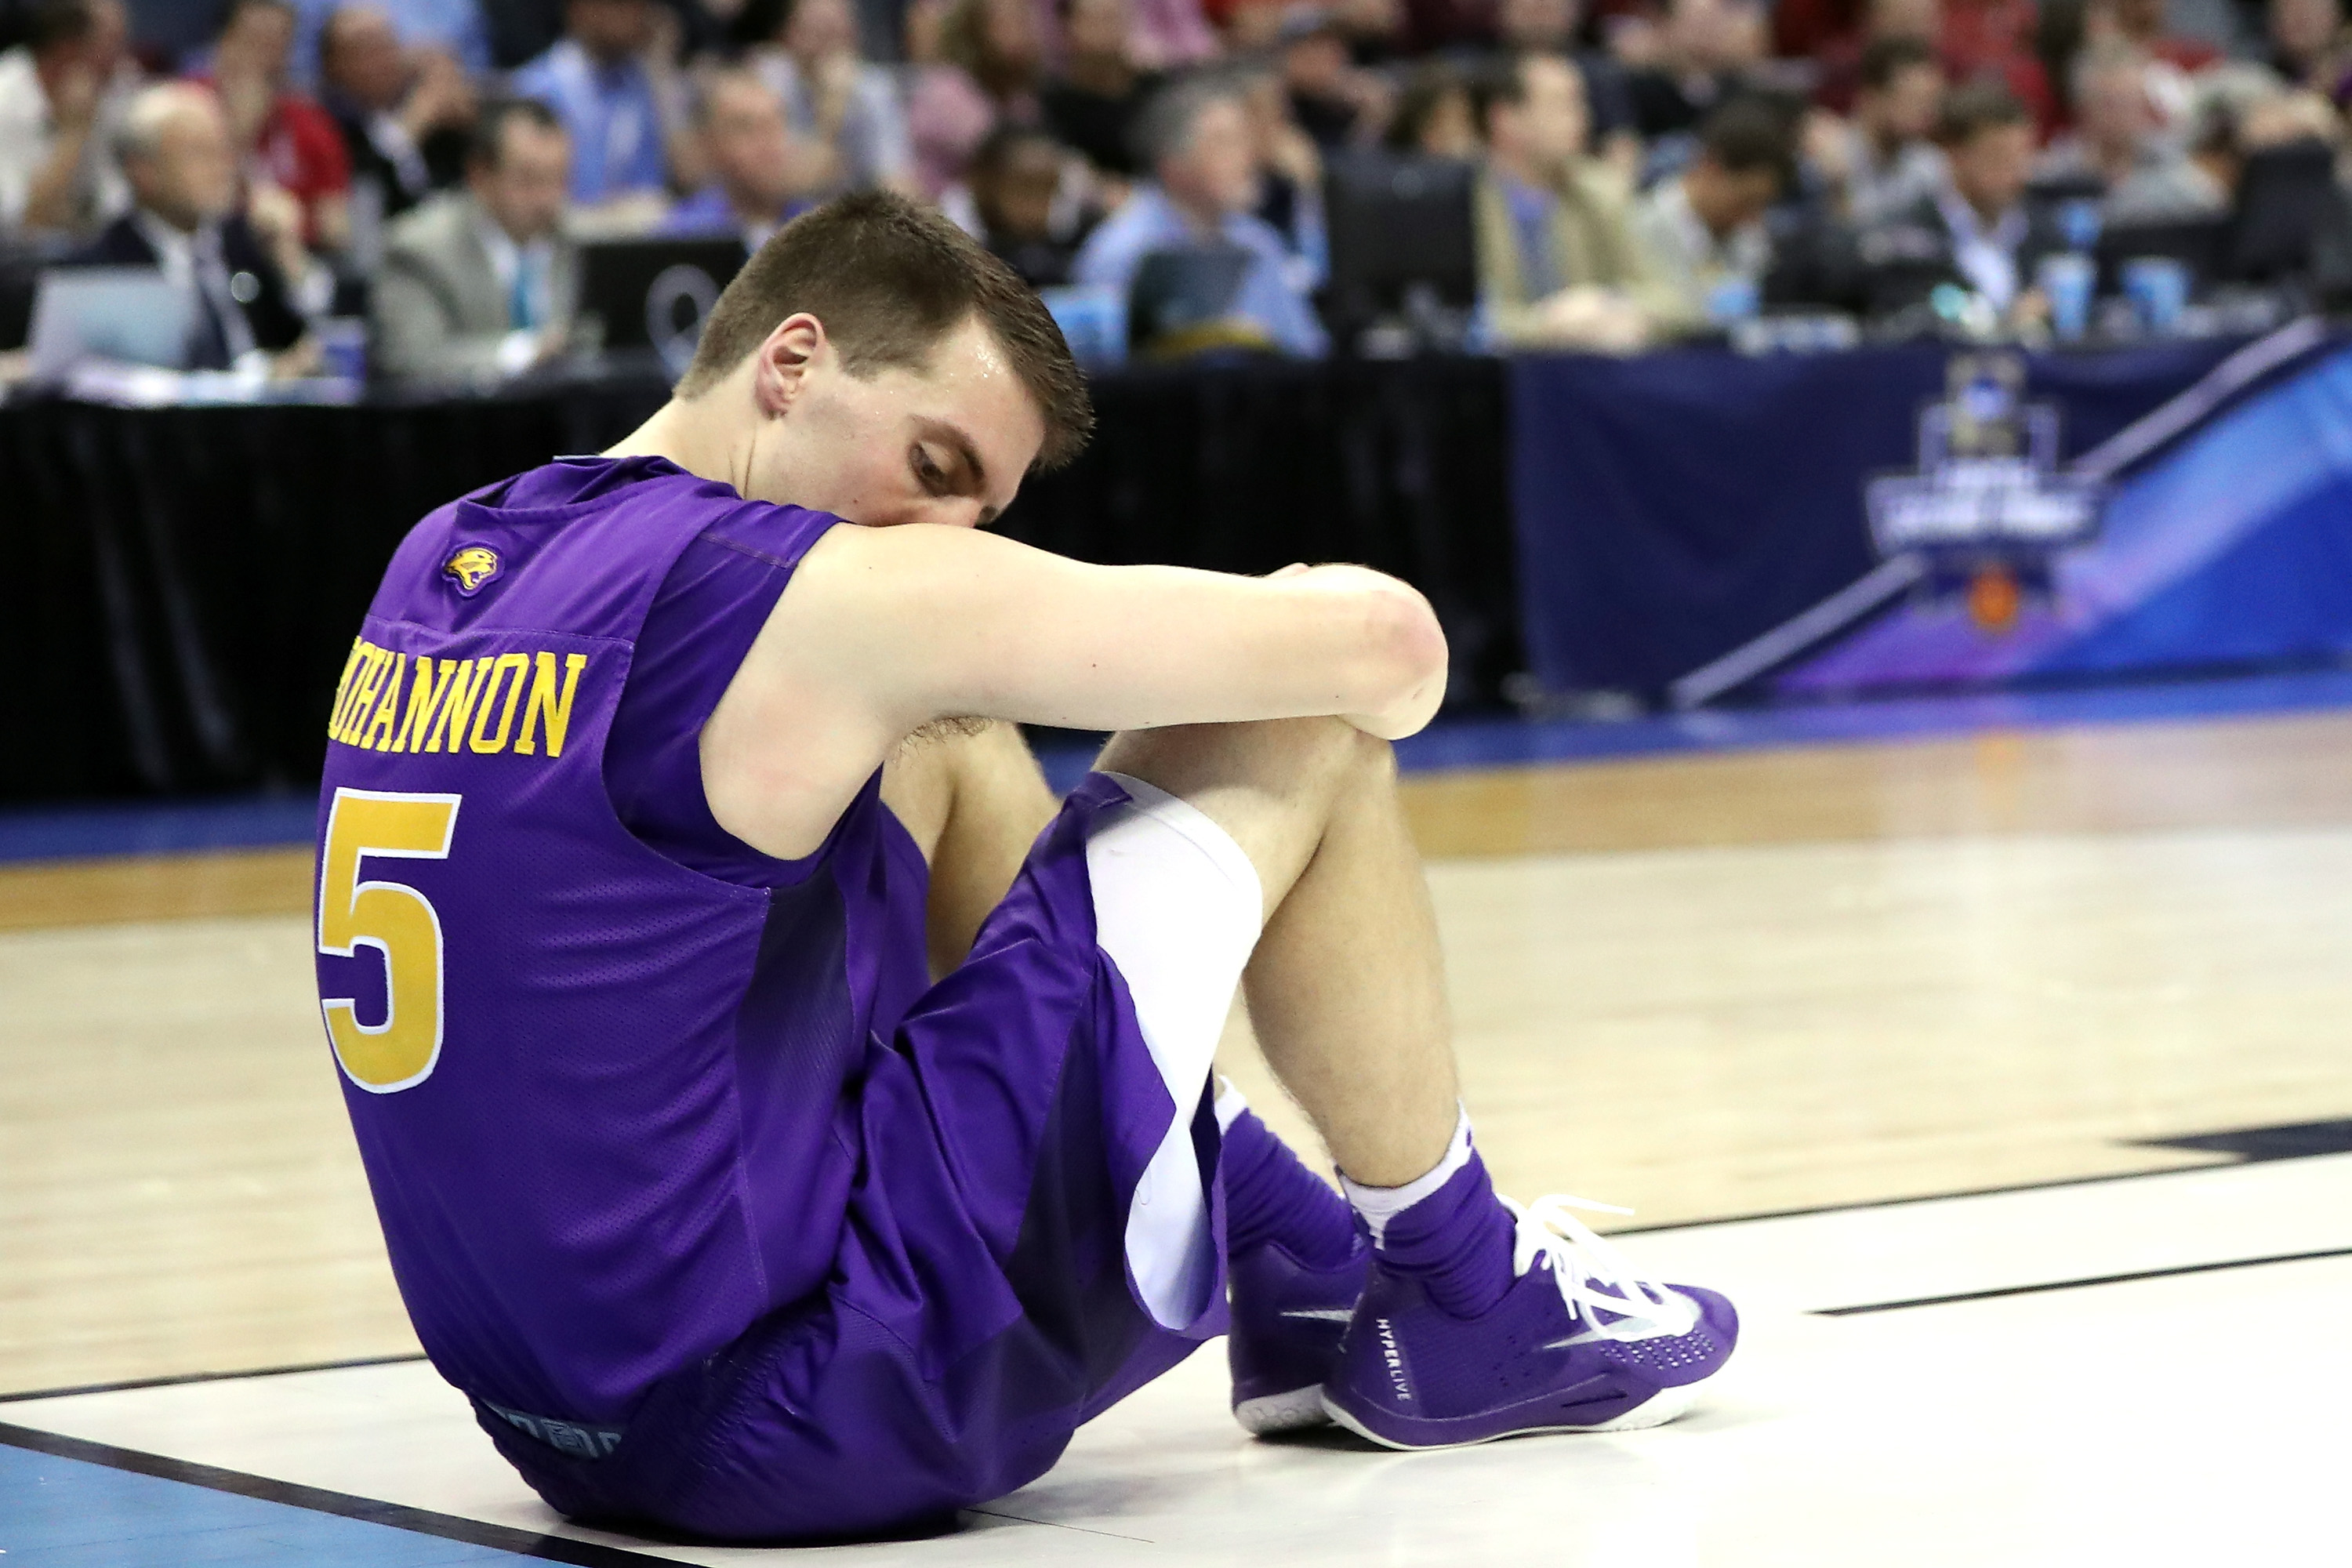 OKLAHOMA CITY, OK - MARCH 20: Matt Bohannon #5 of the Northern Iowa Panthers sits on the court after a play in the second half against the Texas A&M Aggies during the second round of the 2016 NCAA Men's Basketball Tournament at Chesapeake Energy Arena on March 20, 2016 in Oklahoma City, Oklahoma. (Photo by Ronald Martinez/Getty Images)